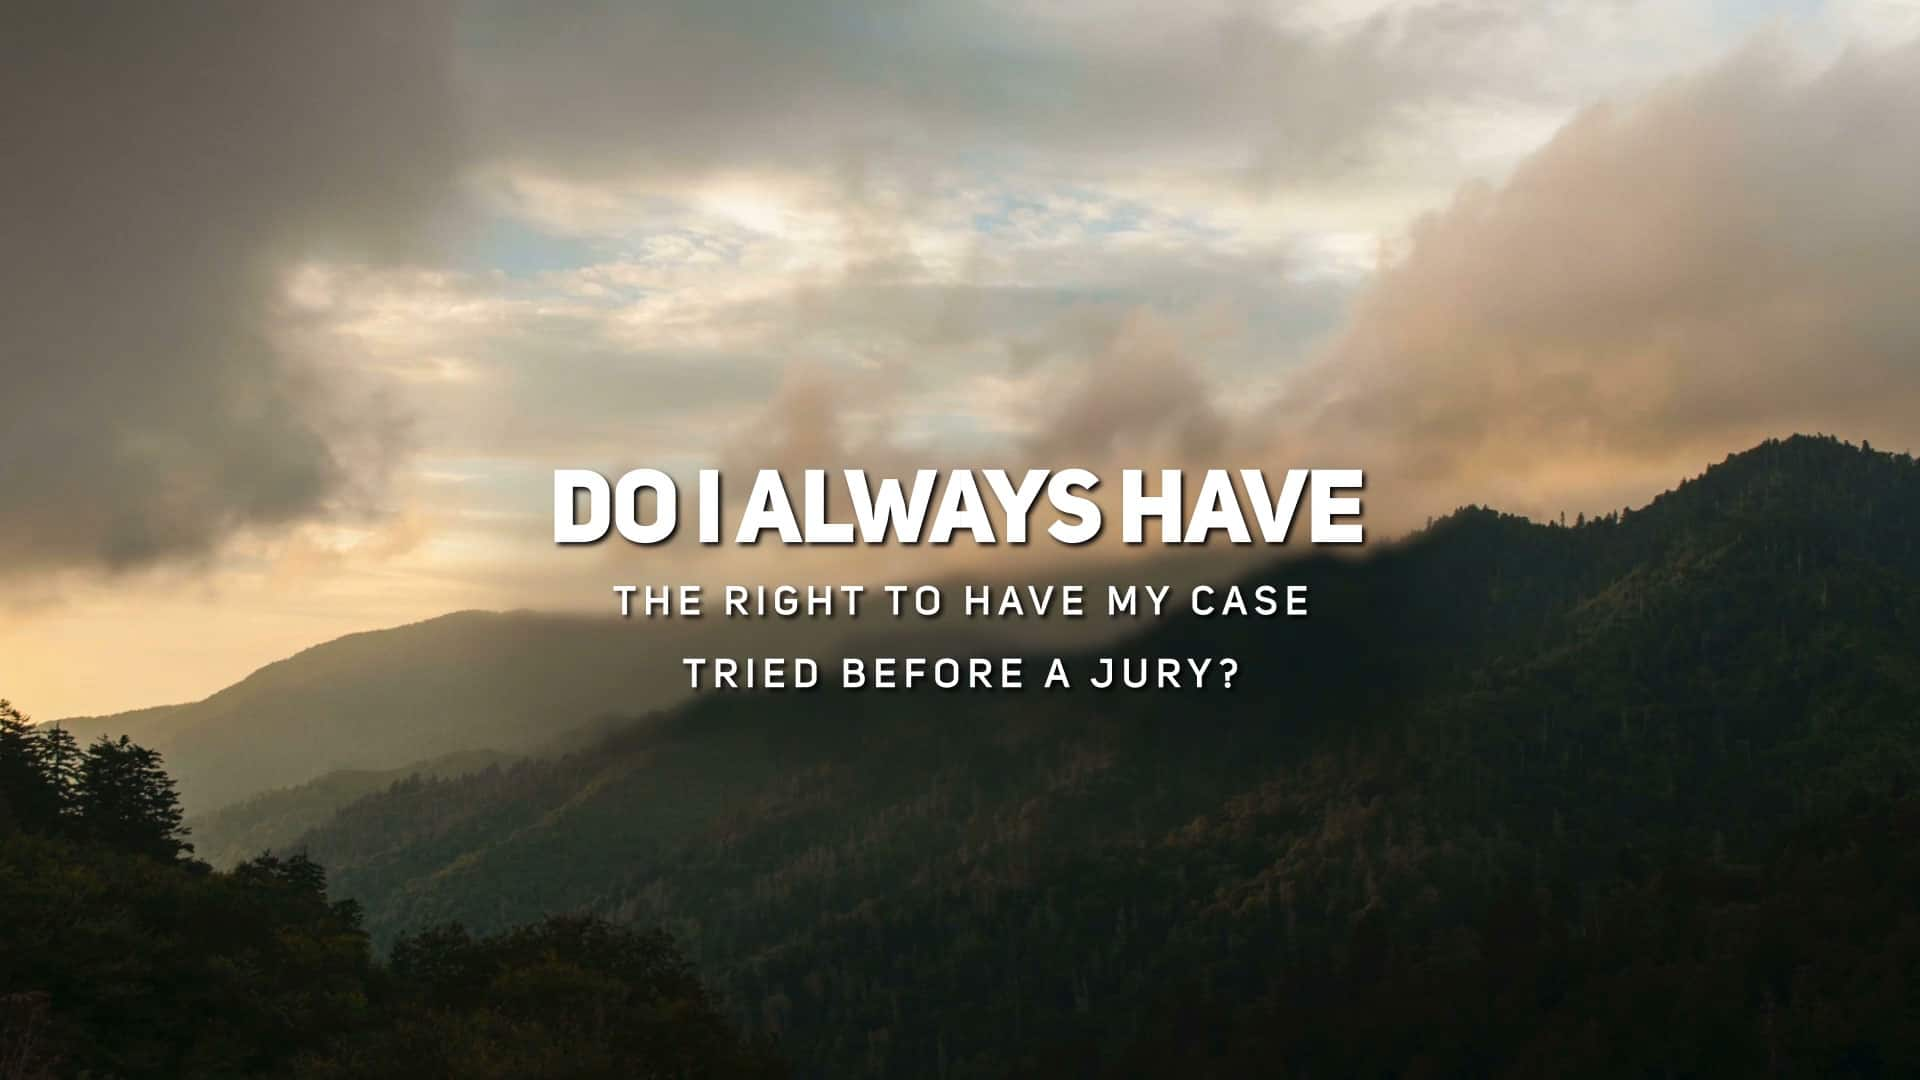 Do I Always Have the Right to Have My Case Tried Before a Jury